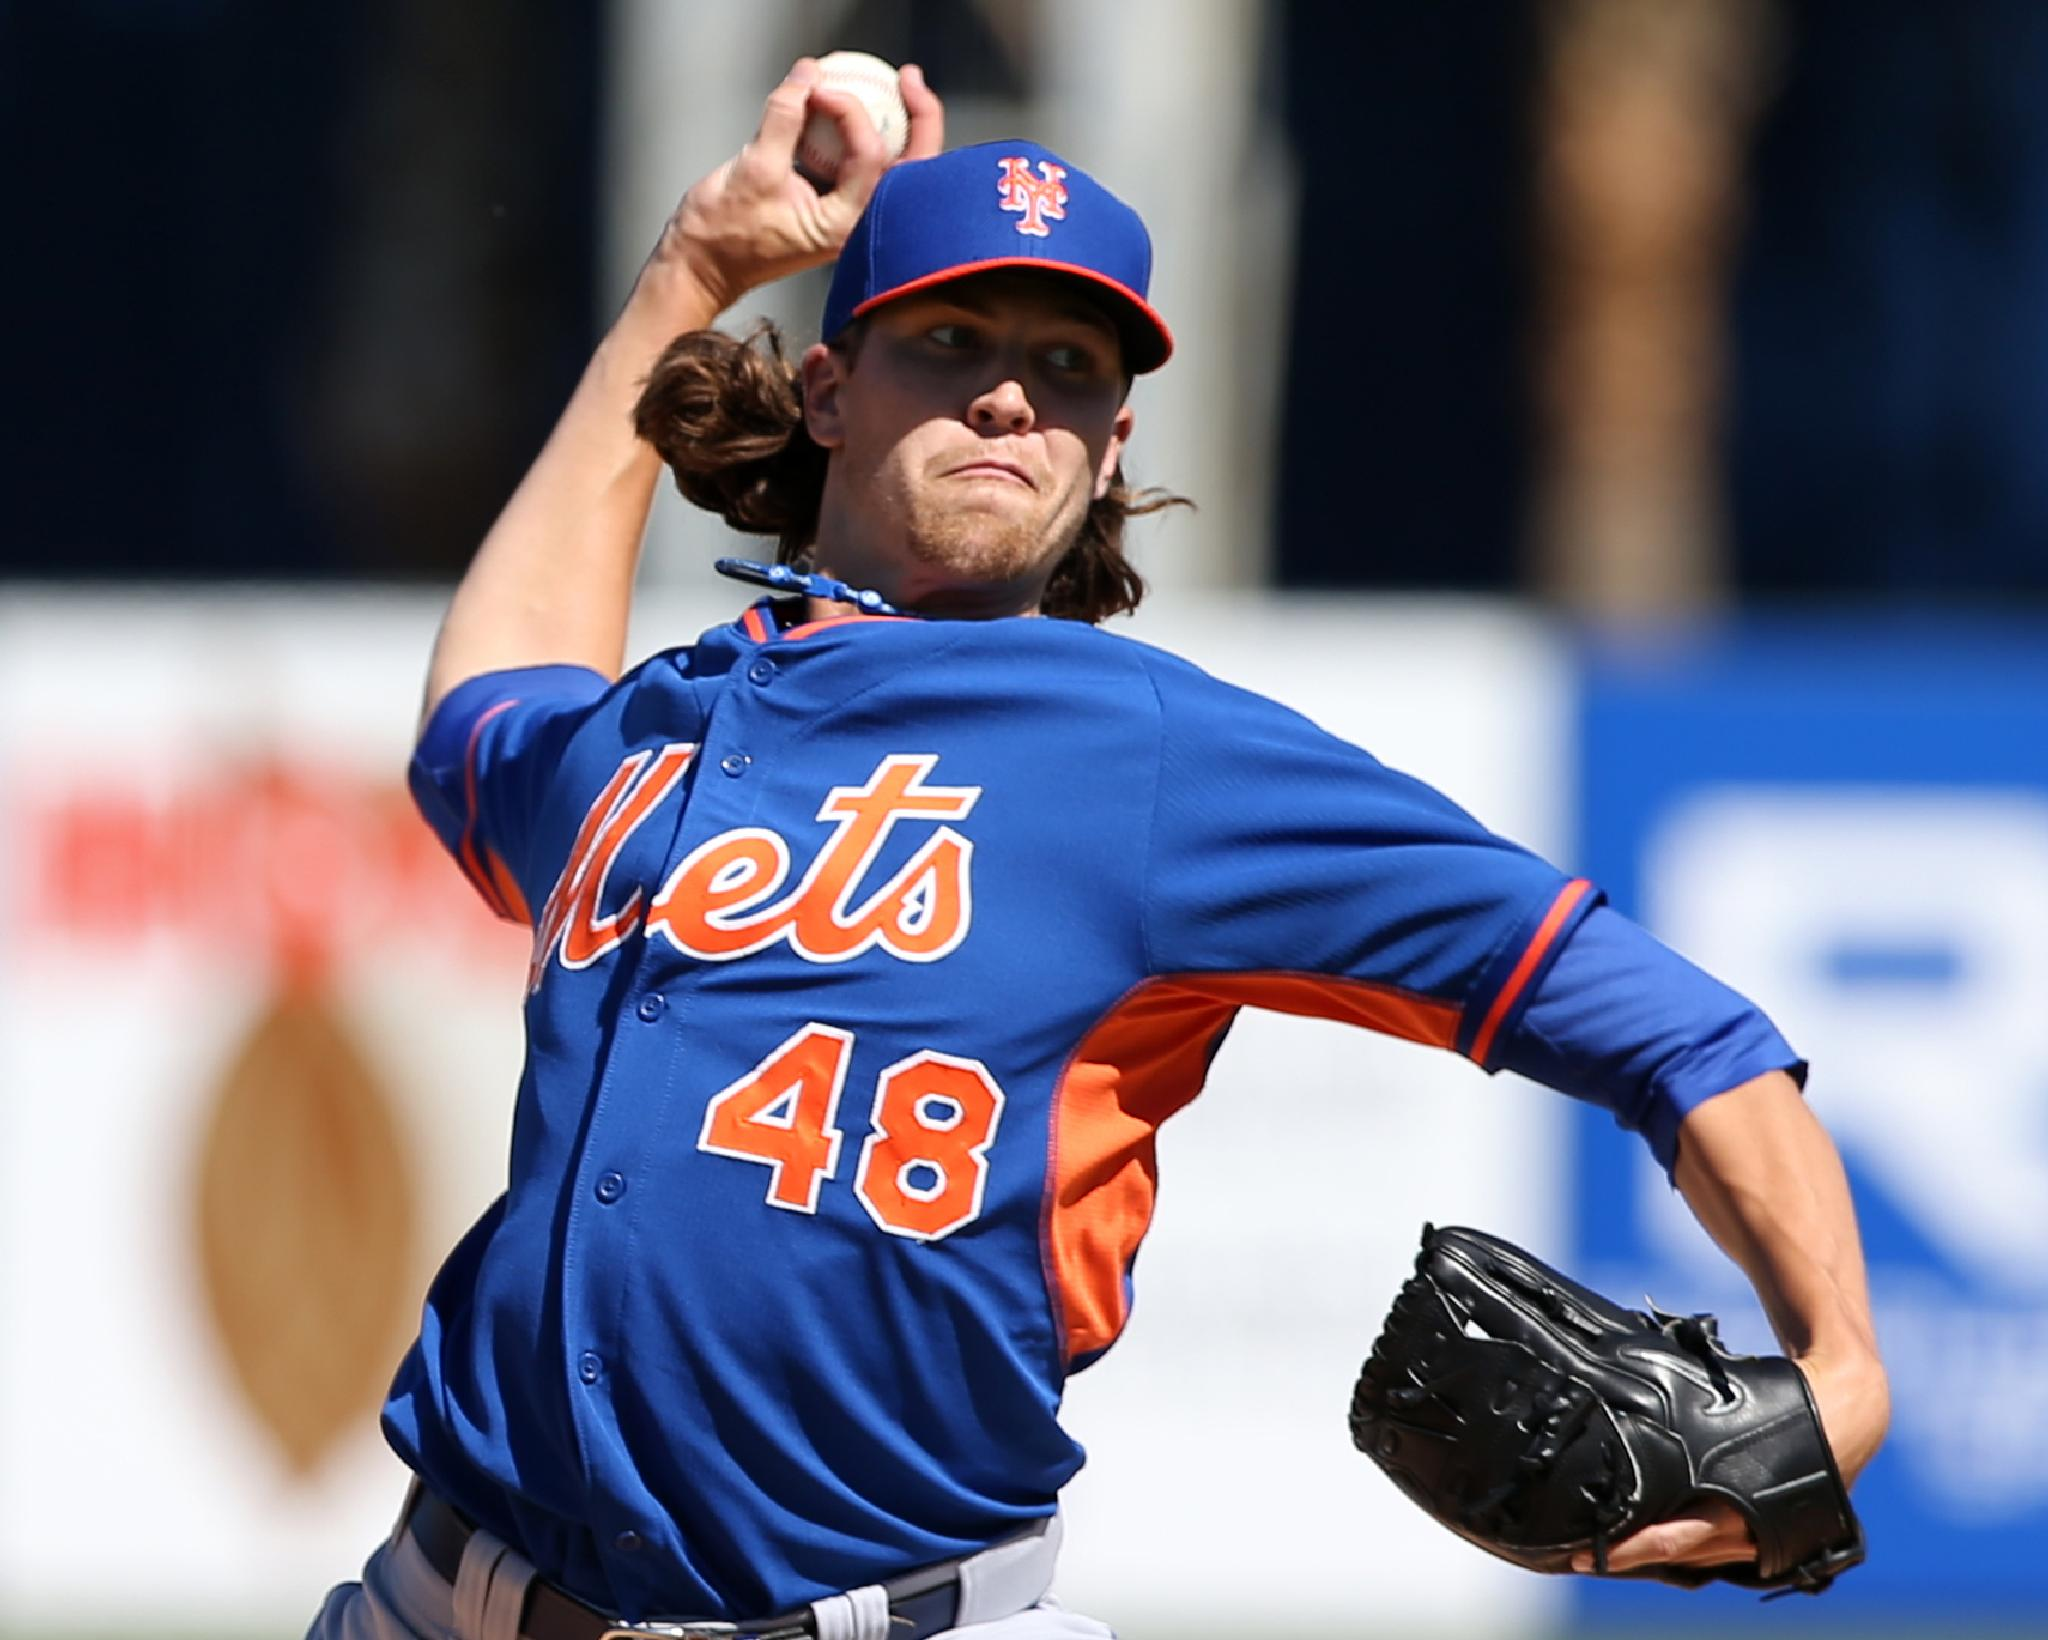 Jacob deGrom 2014 National League Rookie of the Year by Bruce Adler